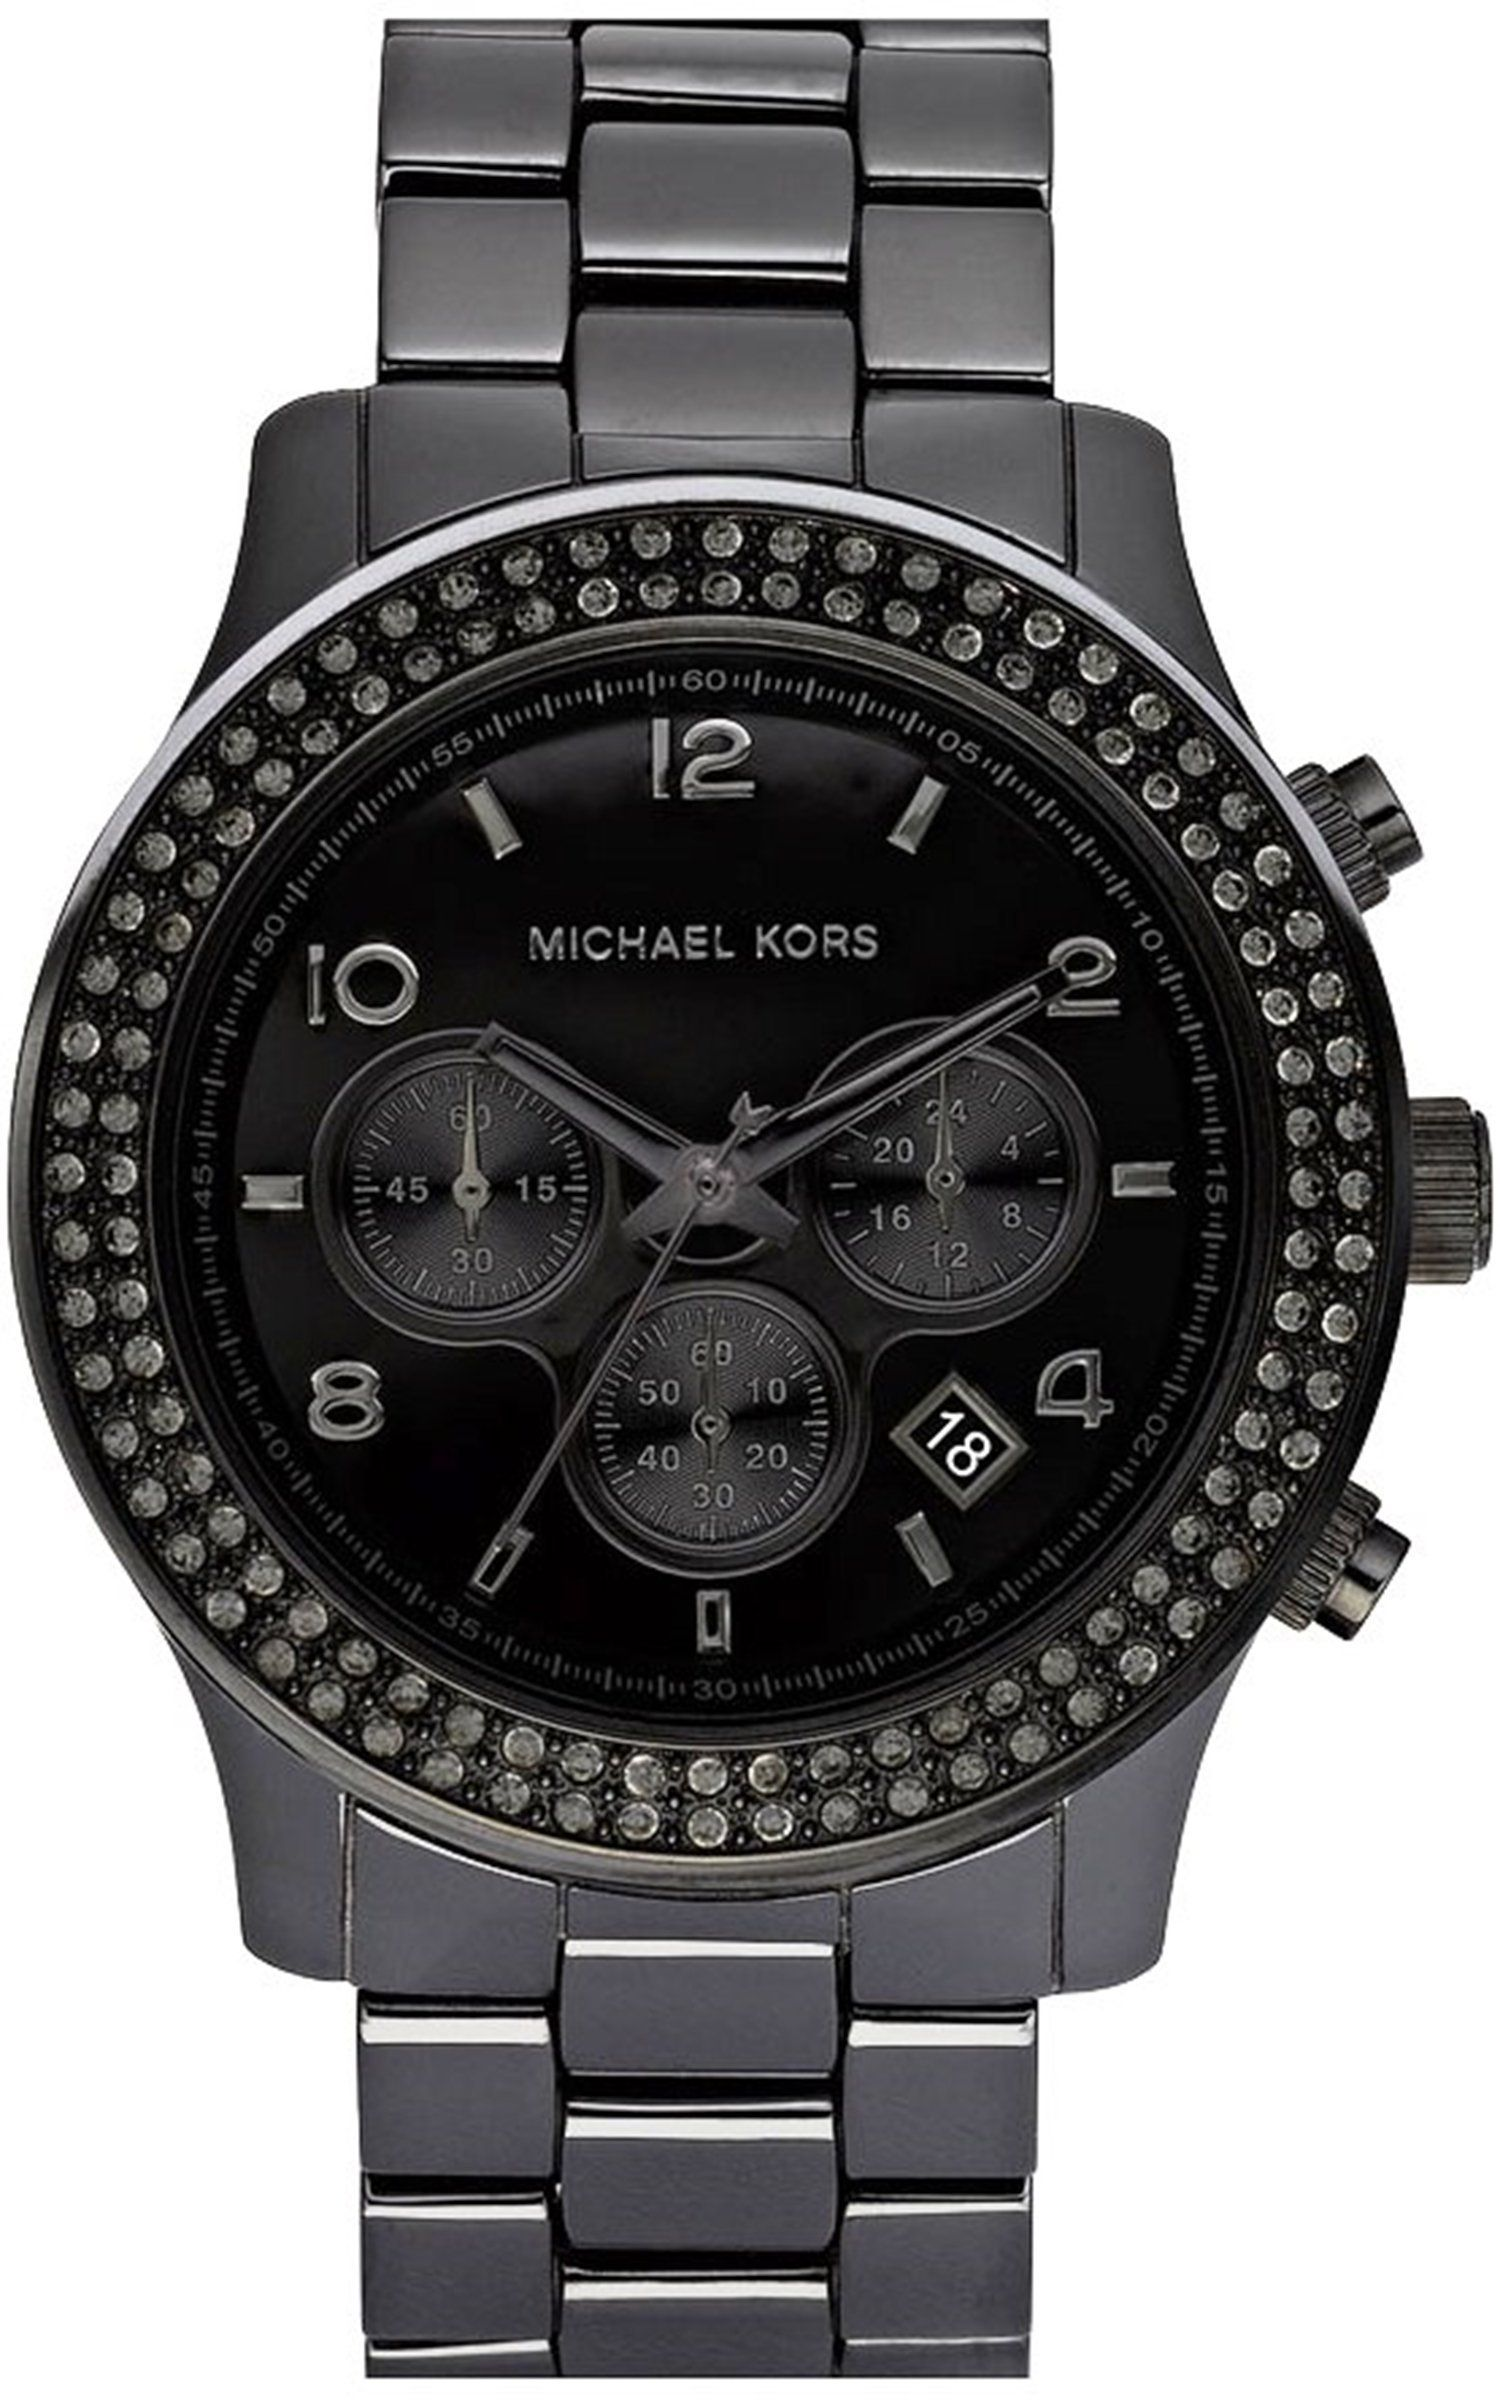 michael kors mk5360 montre femme quartz chronographe chronom tre bracelet c ramique. Black Bedroom Furniture Sets. Home Design Ideas